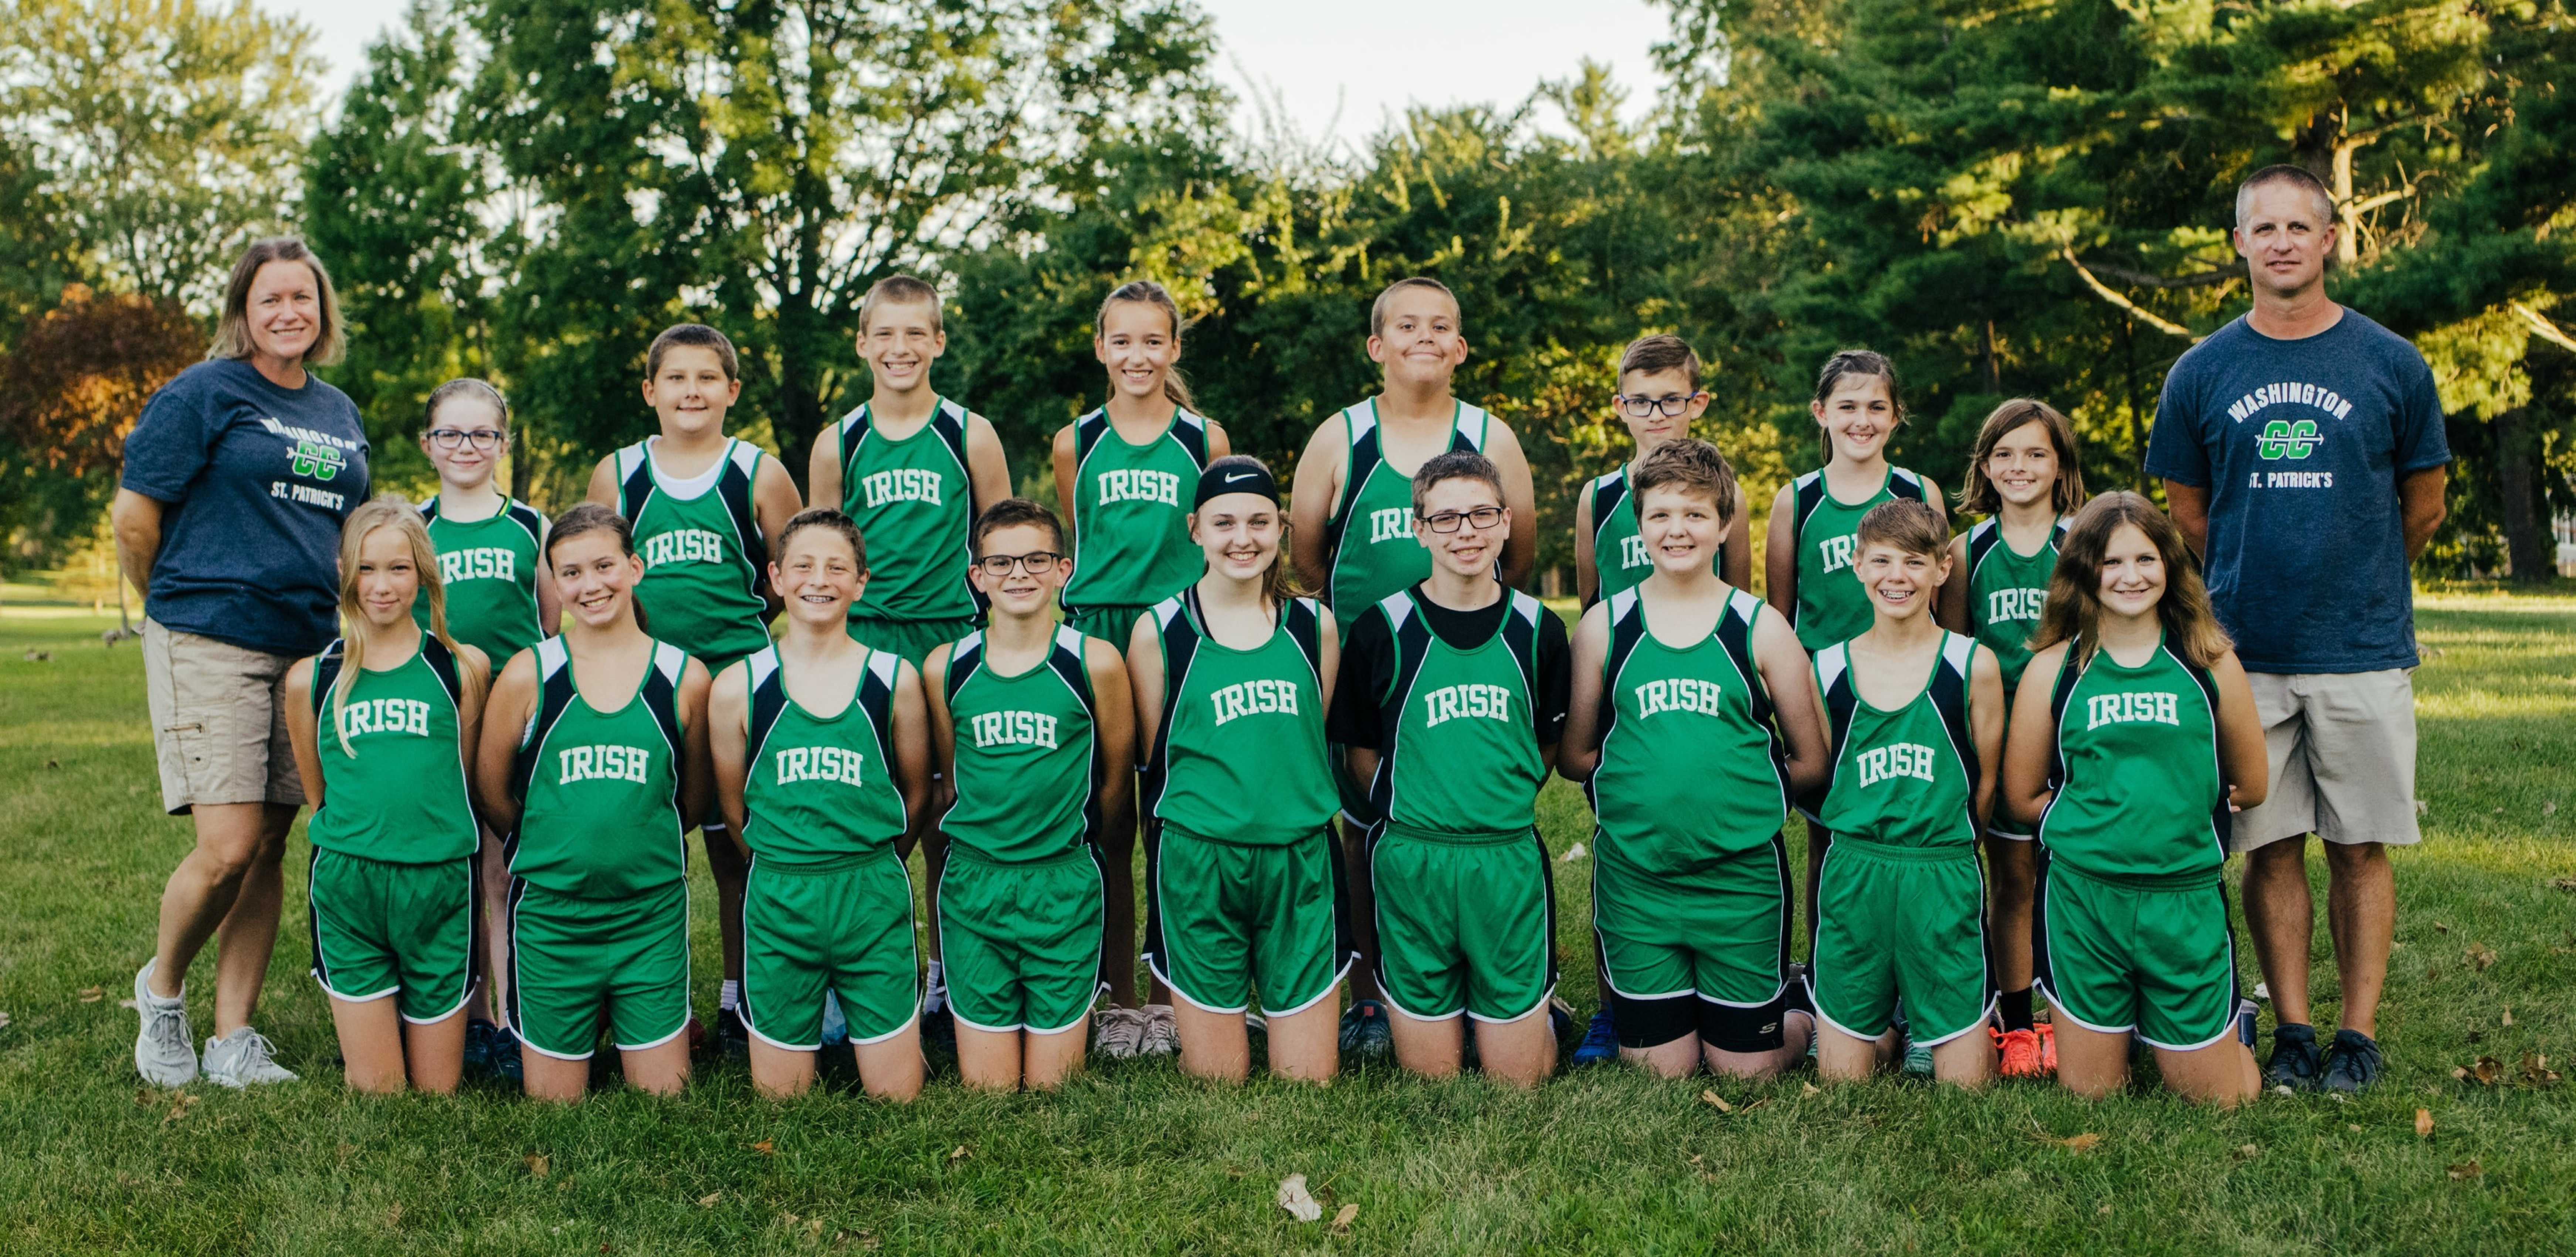 St Pats Cross Country 2020 St Pats Cross Country